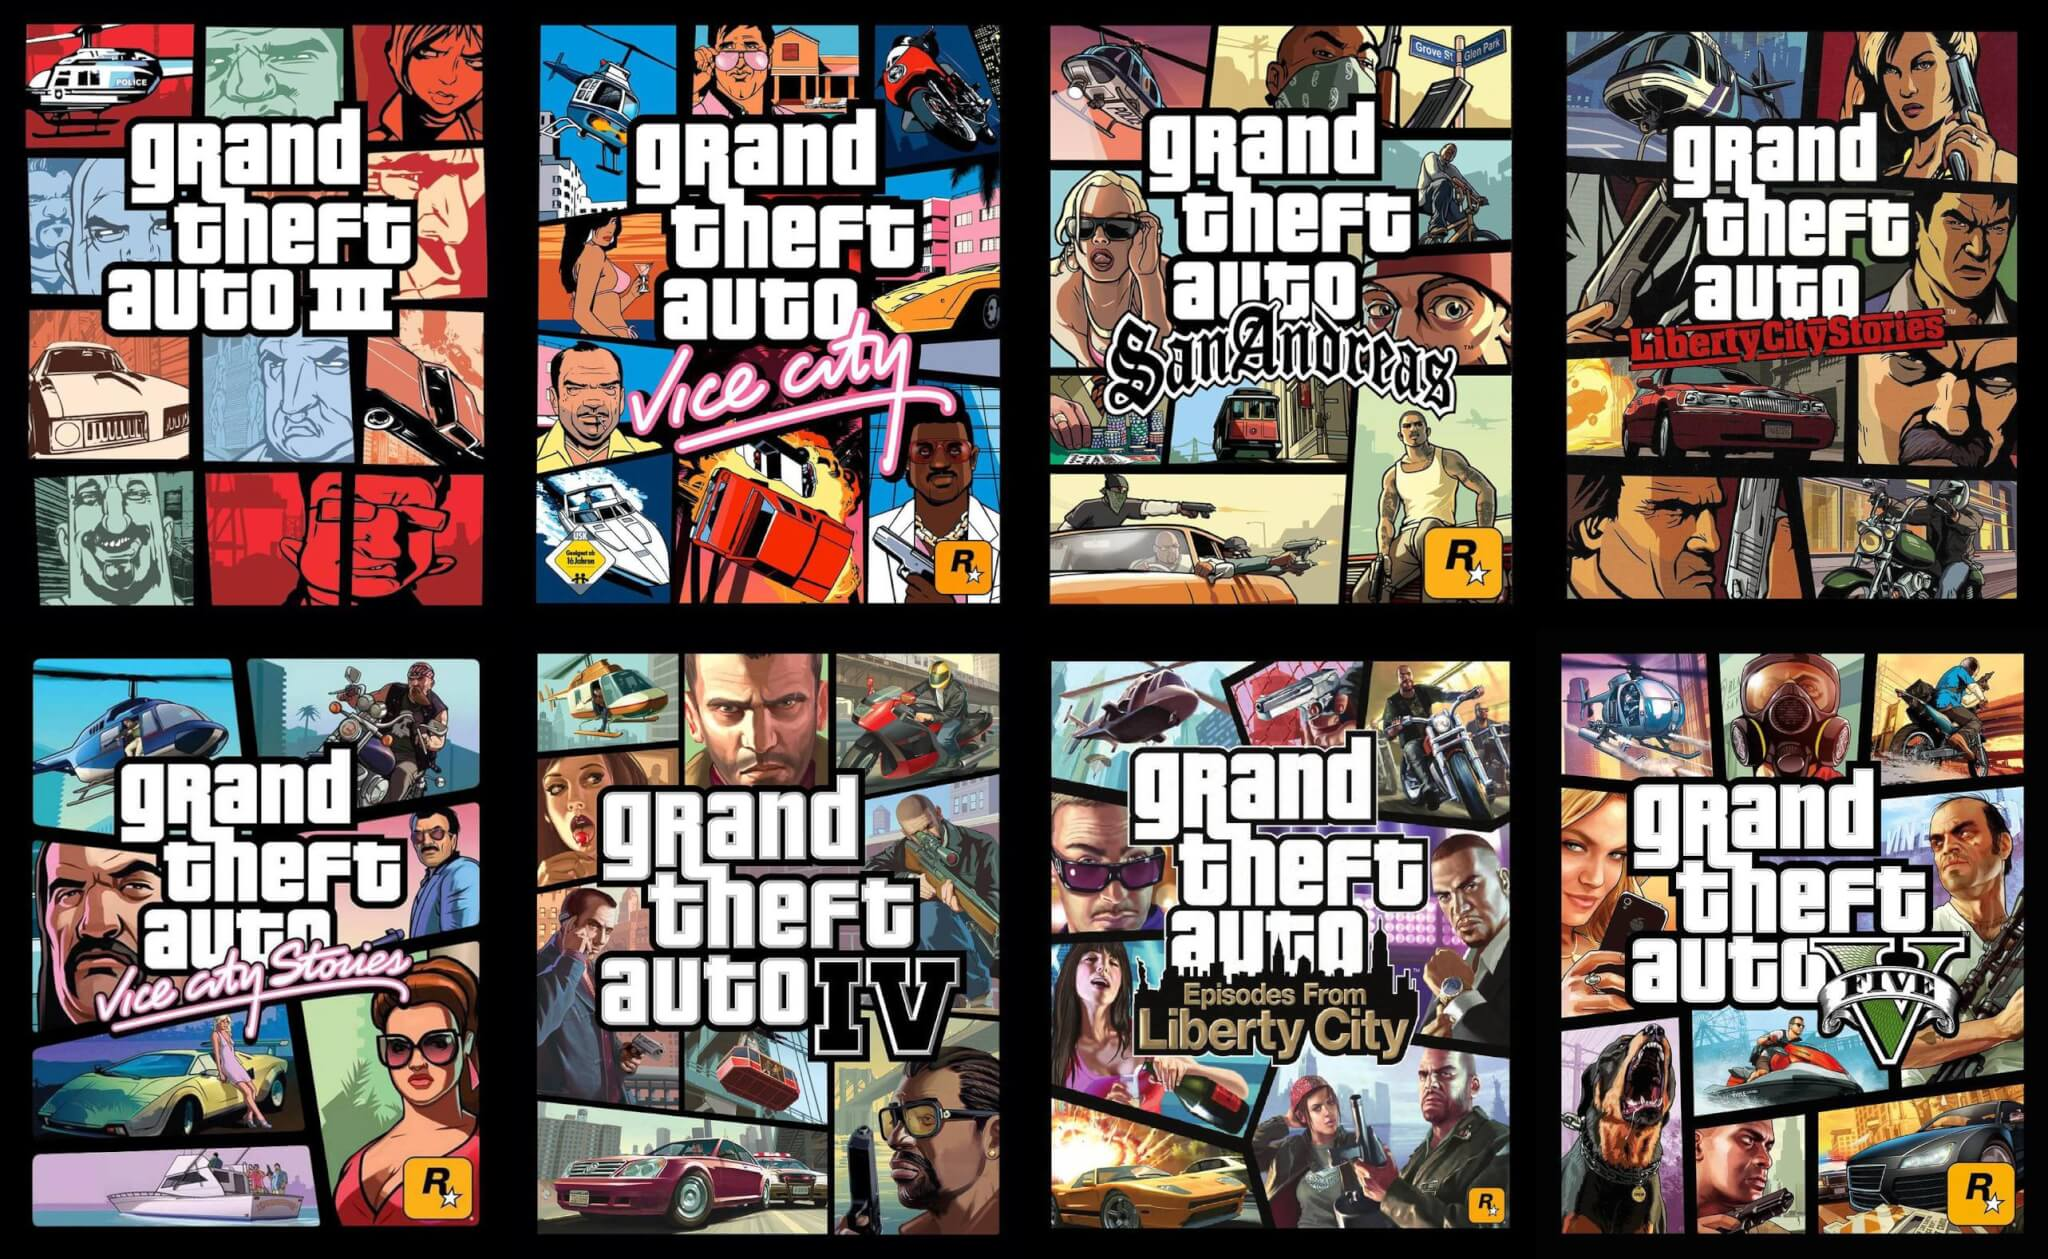 gta-covers